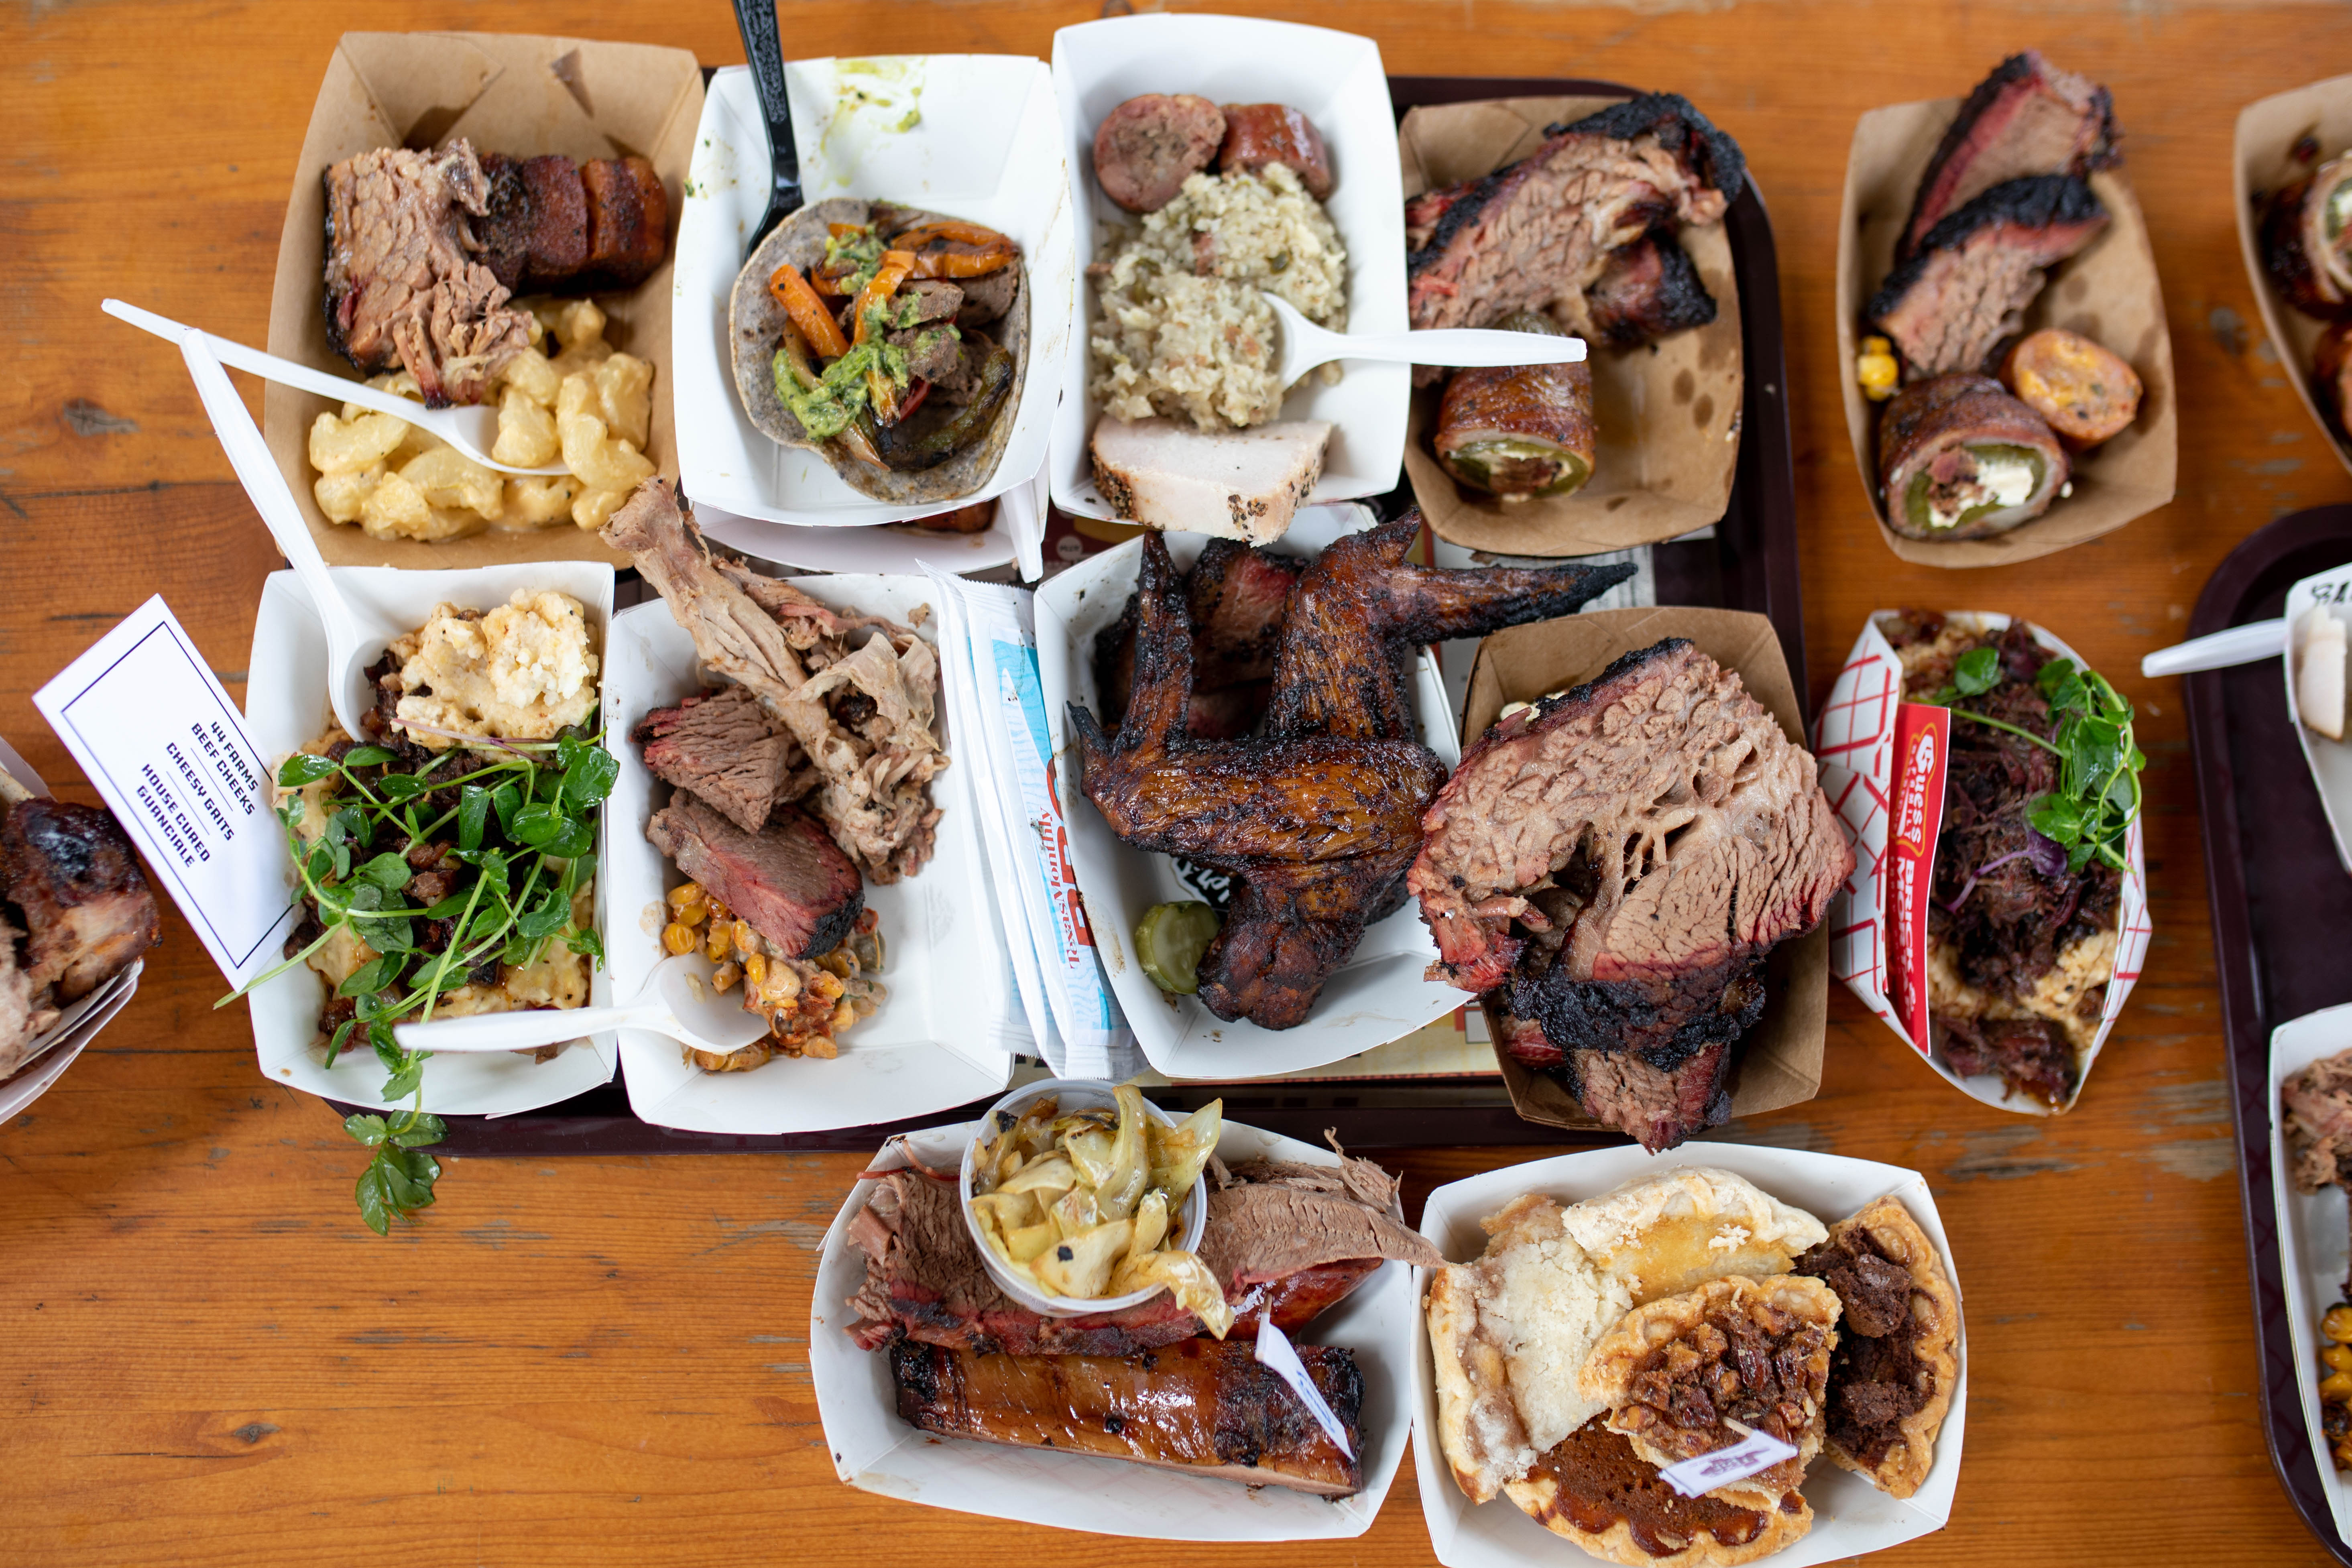 Barbecue from the Texas Monthly BBQ Fest in 2018